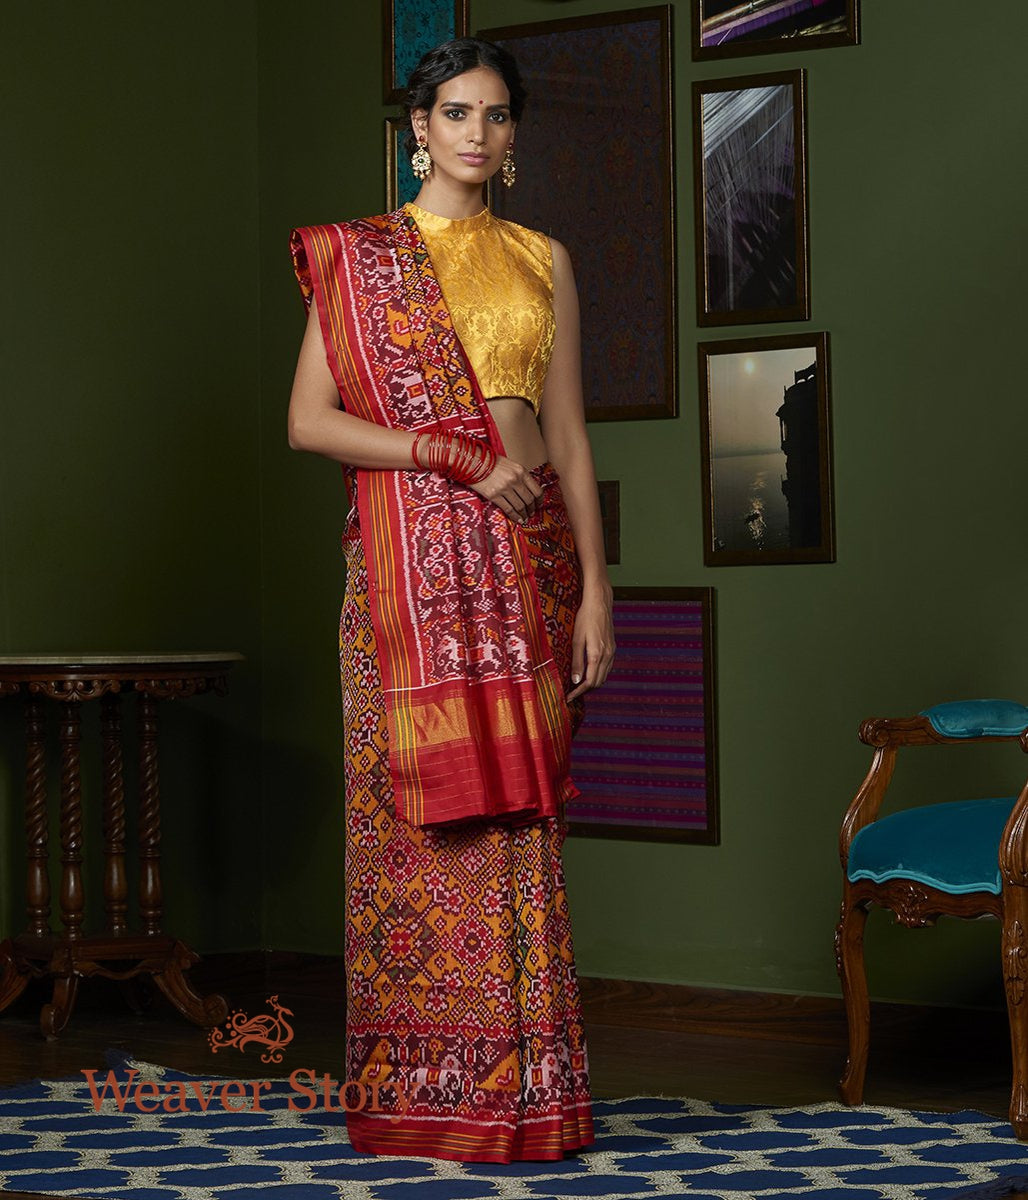 Handwoven Mustard and Red Gujarat Patola Saree with Red Border